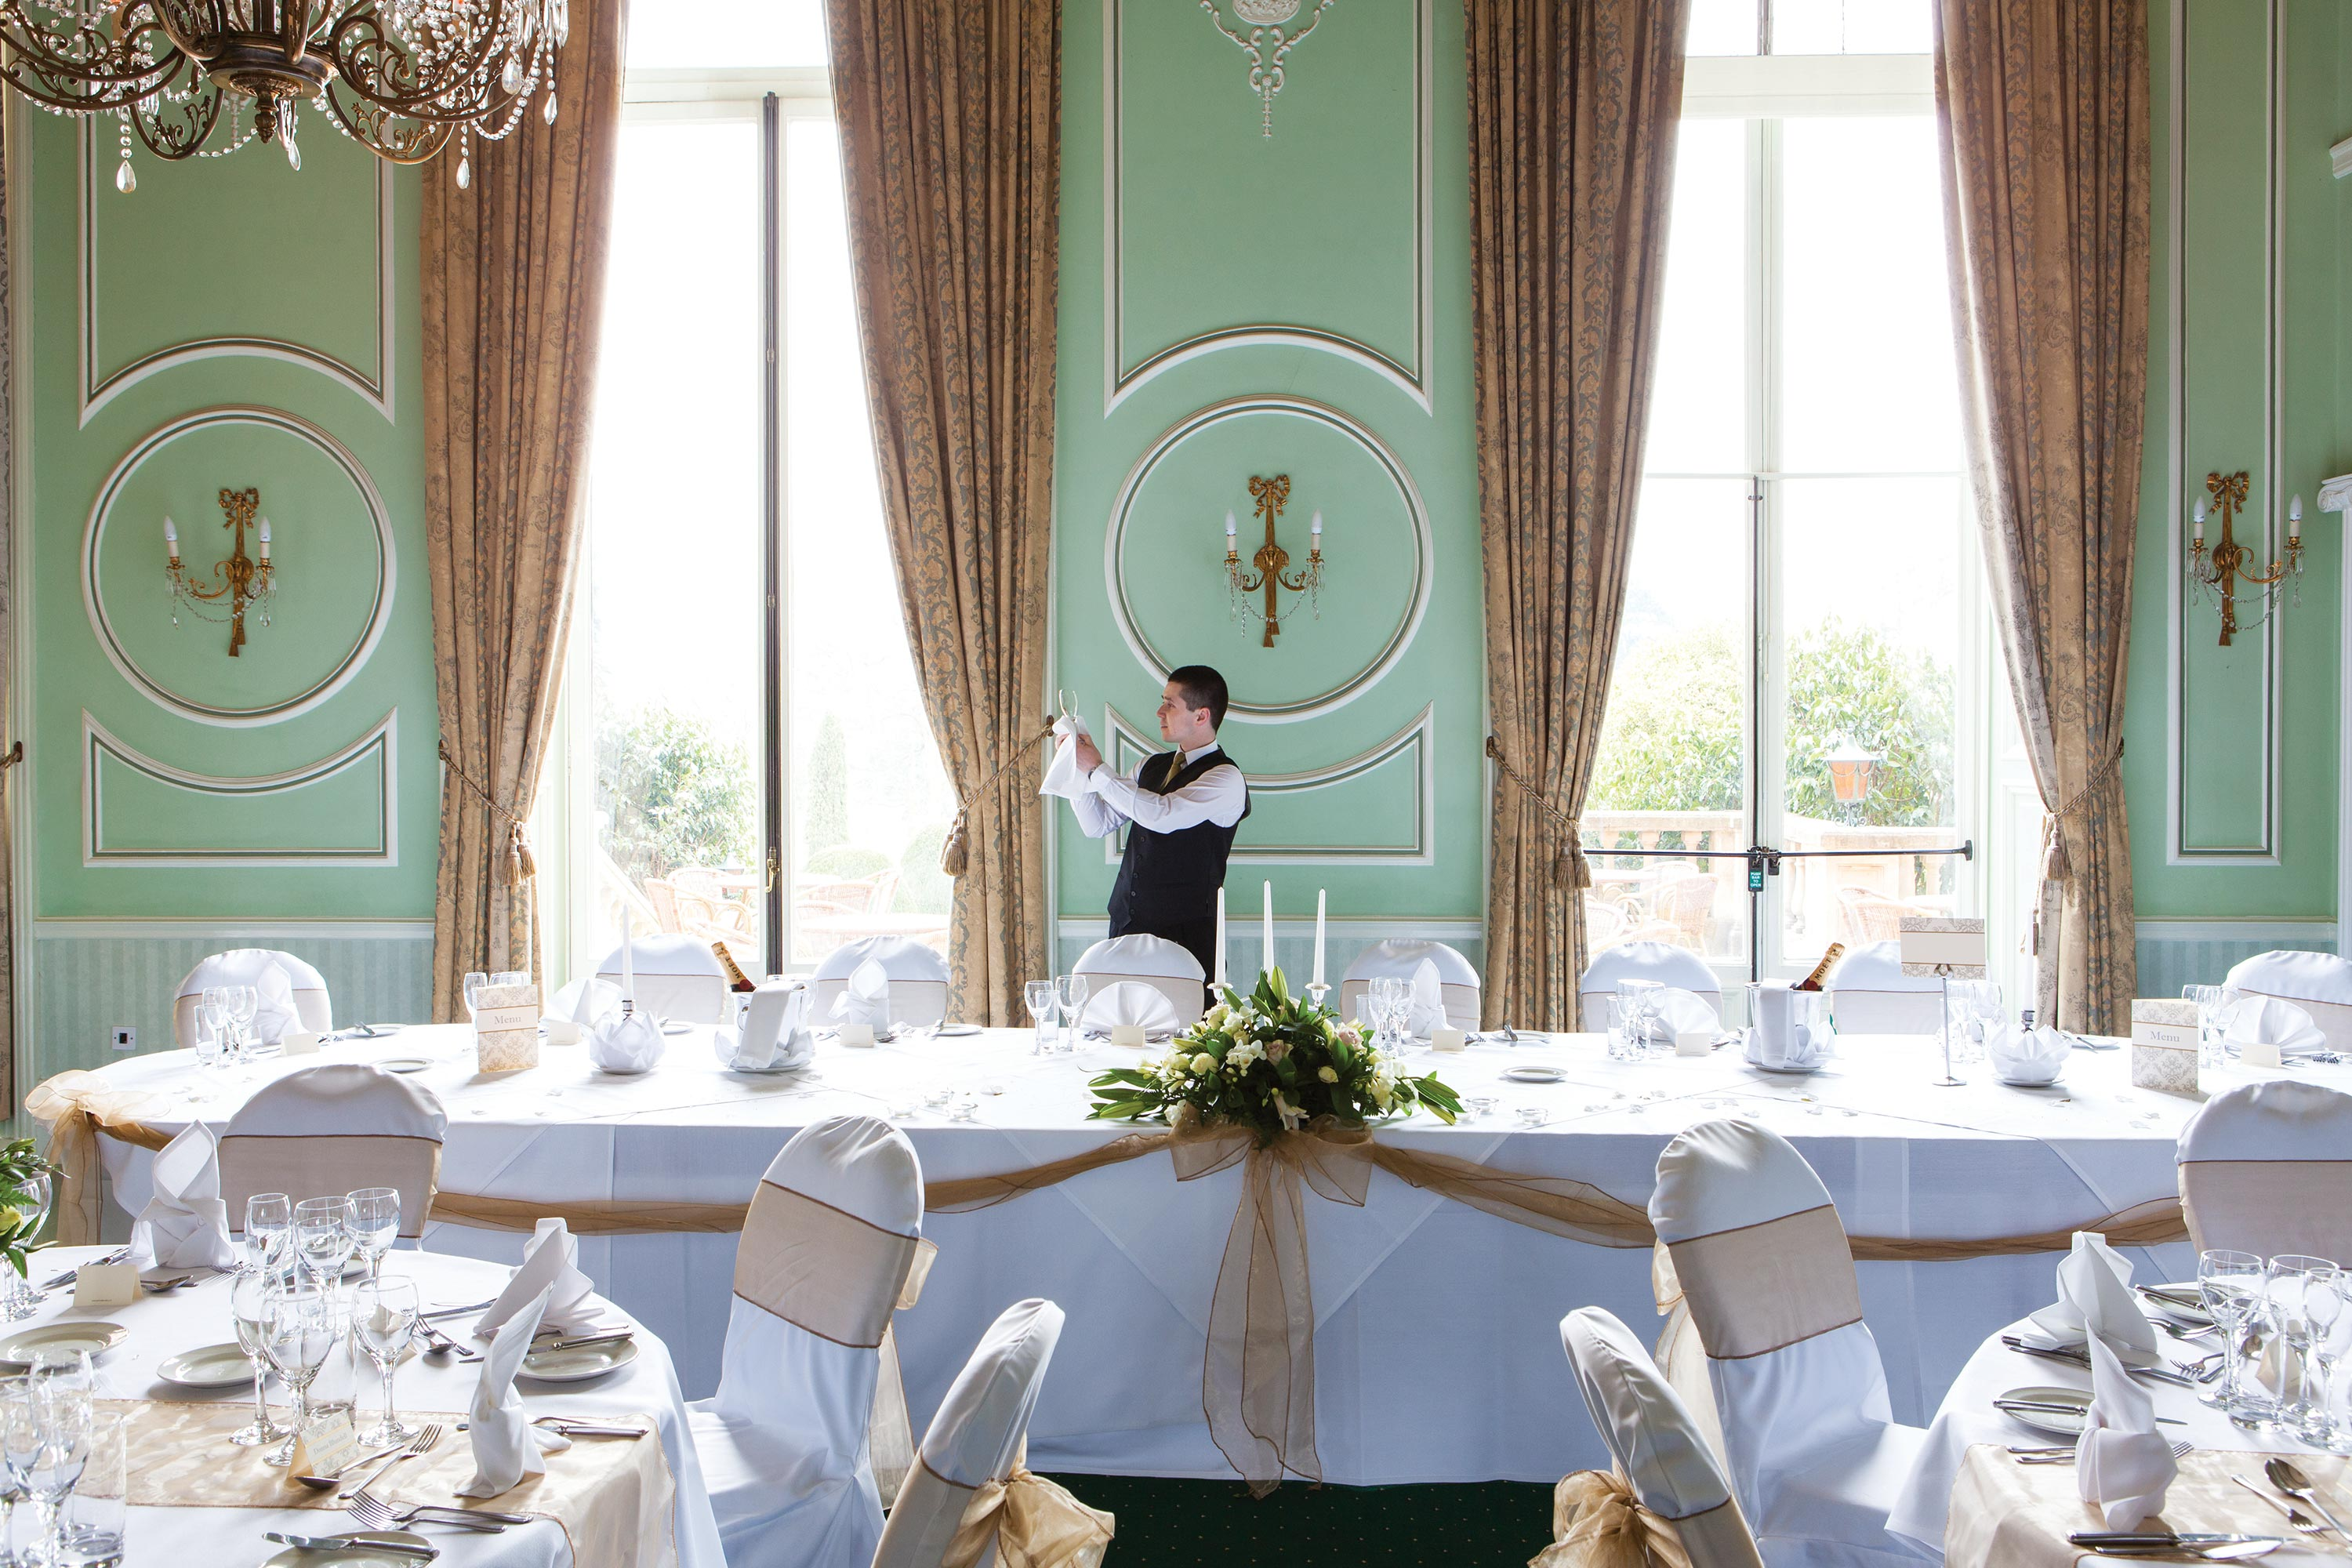 Hotel photography for Chateau Impney by Mighty, hotel marketing agency Worcester